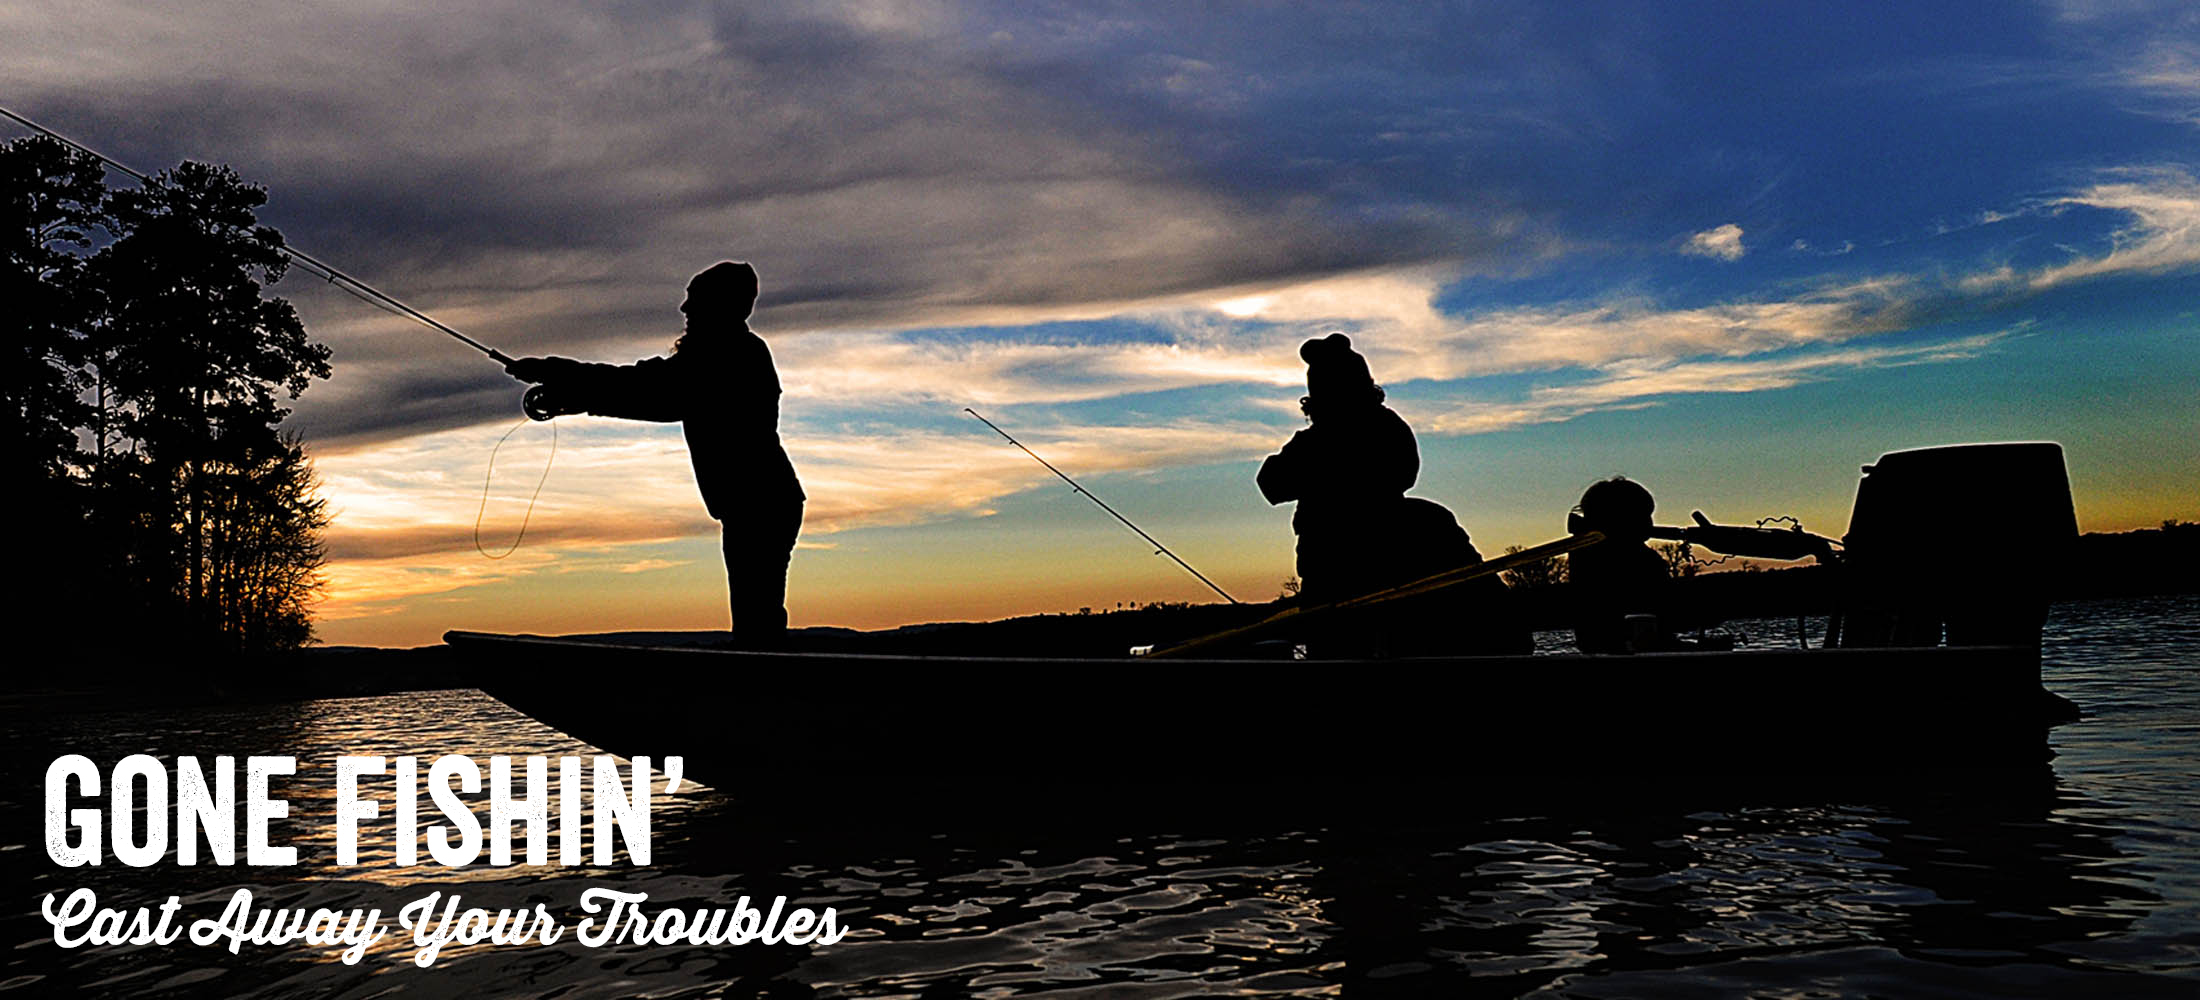 Cleveland TN area fishing locations